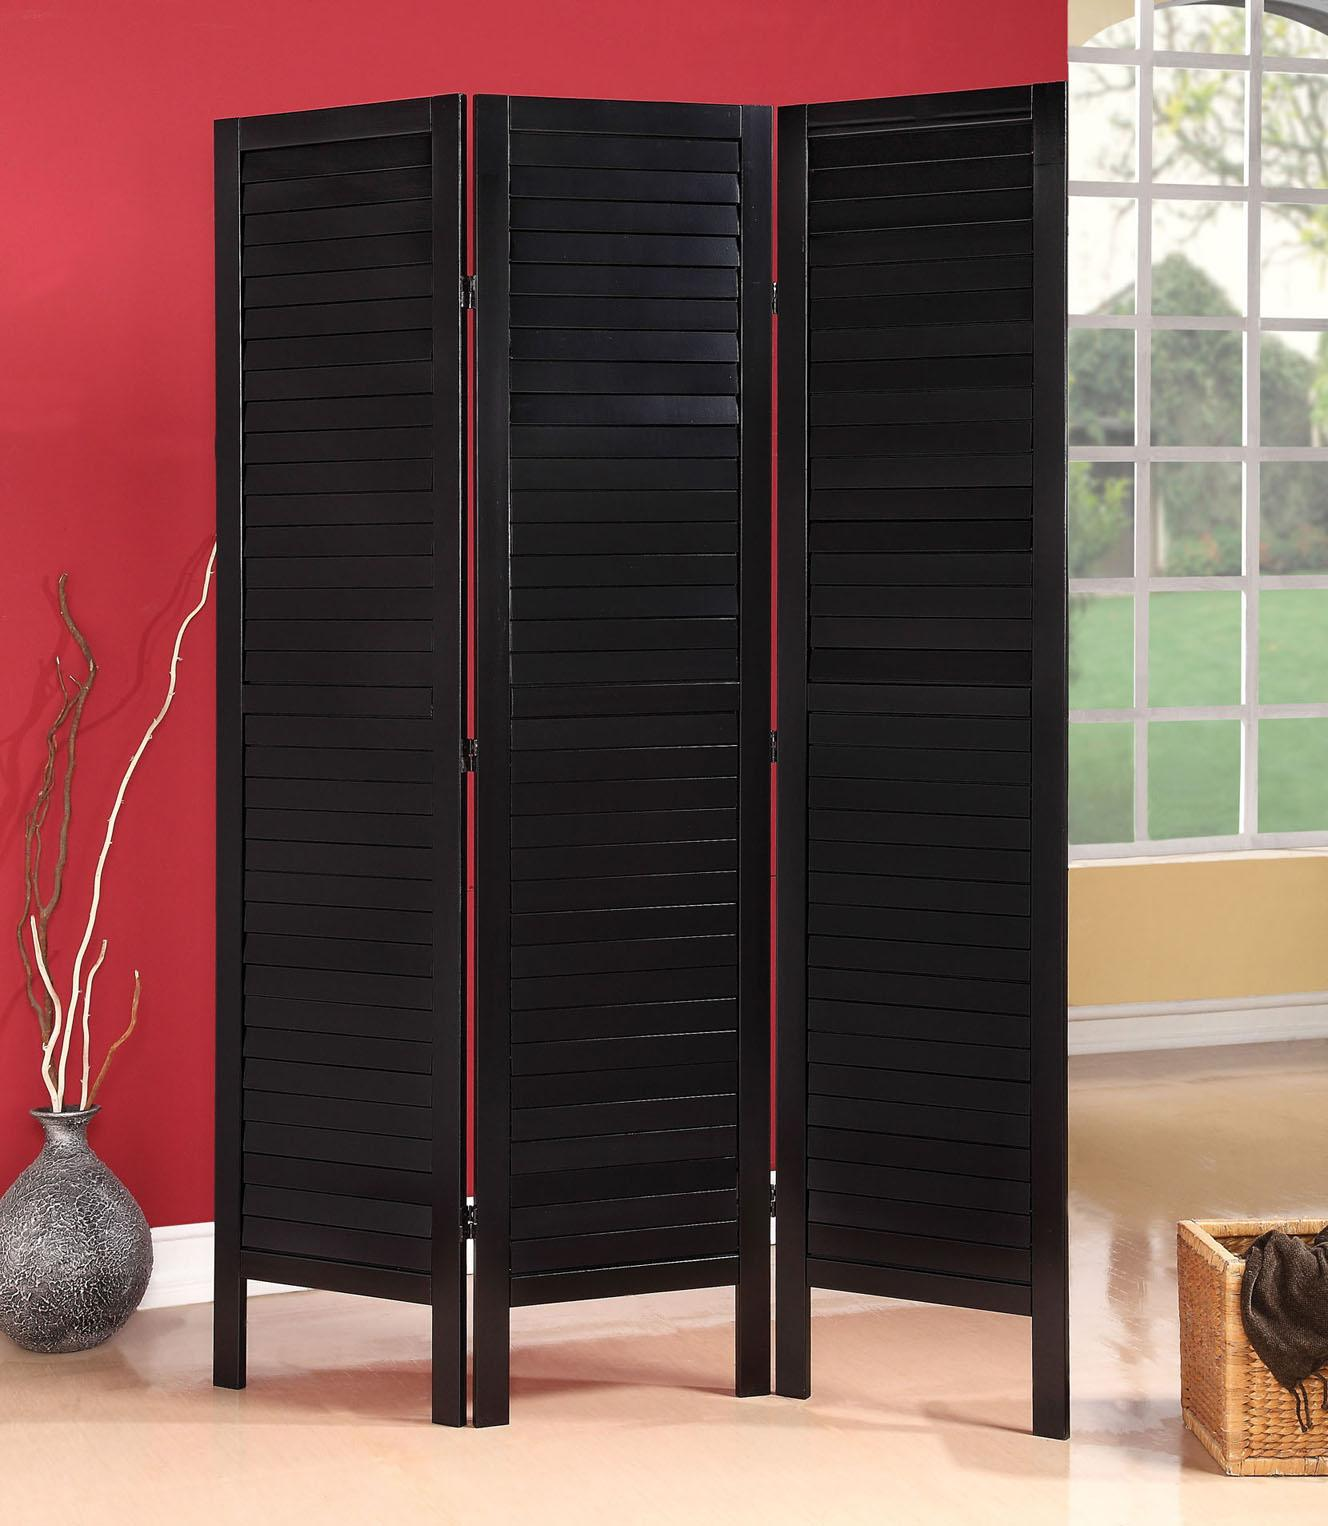 Acme Furniture Trudy Black 3-Panel Wooden Screen - Item Number: 98024